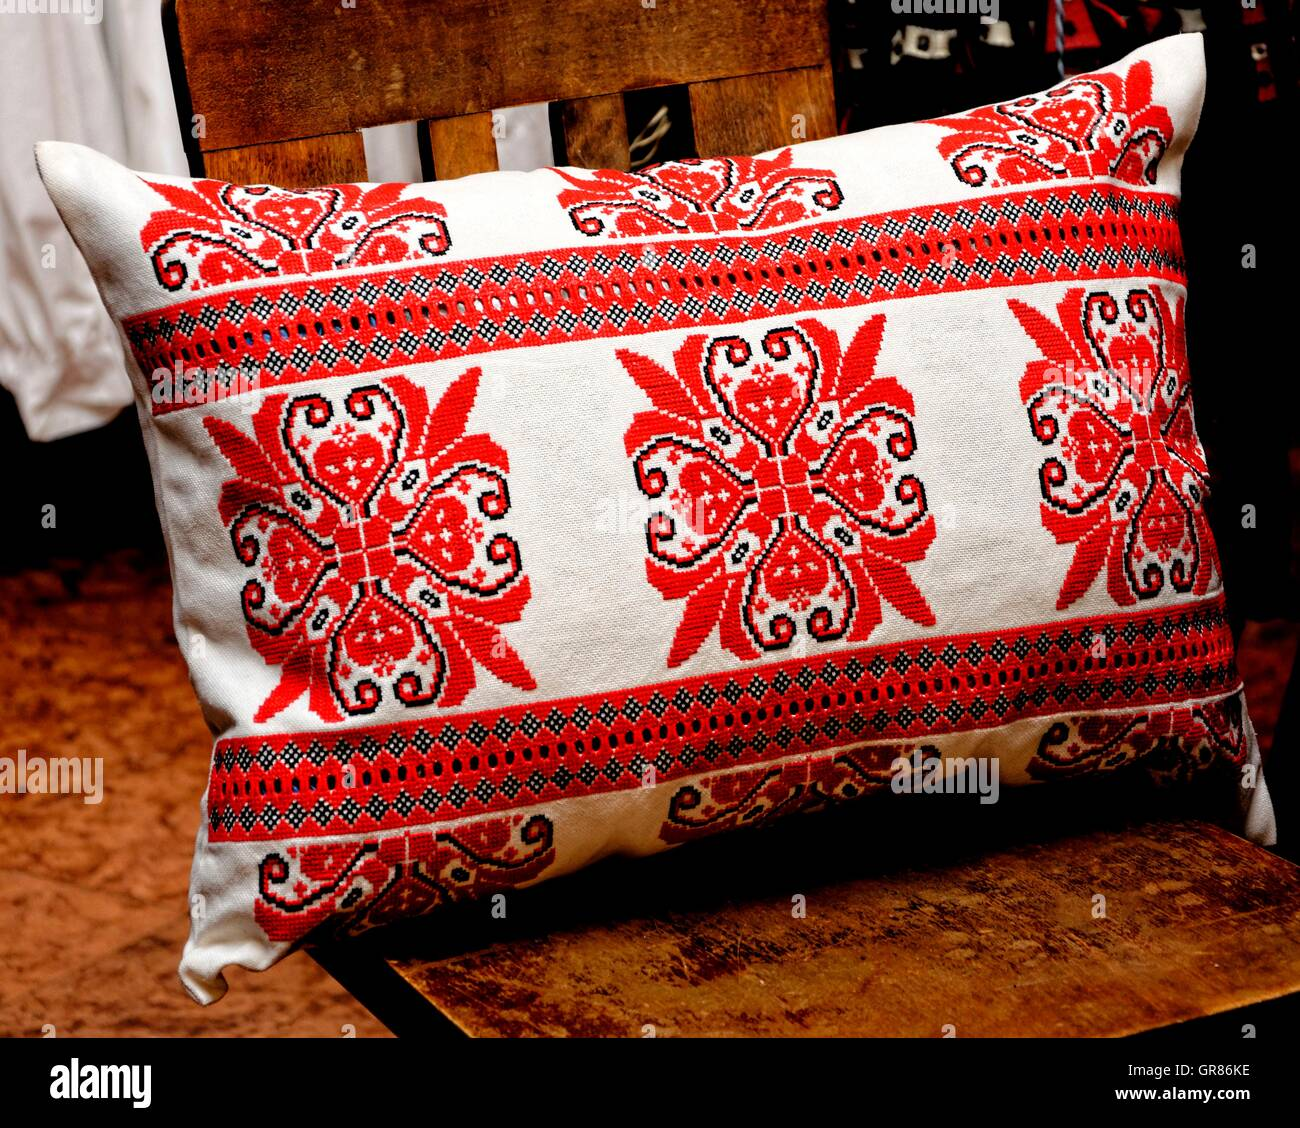 Pillow In Red Cross-Stitch Embroidery - Stock Image